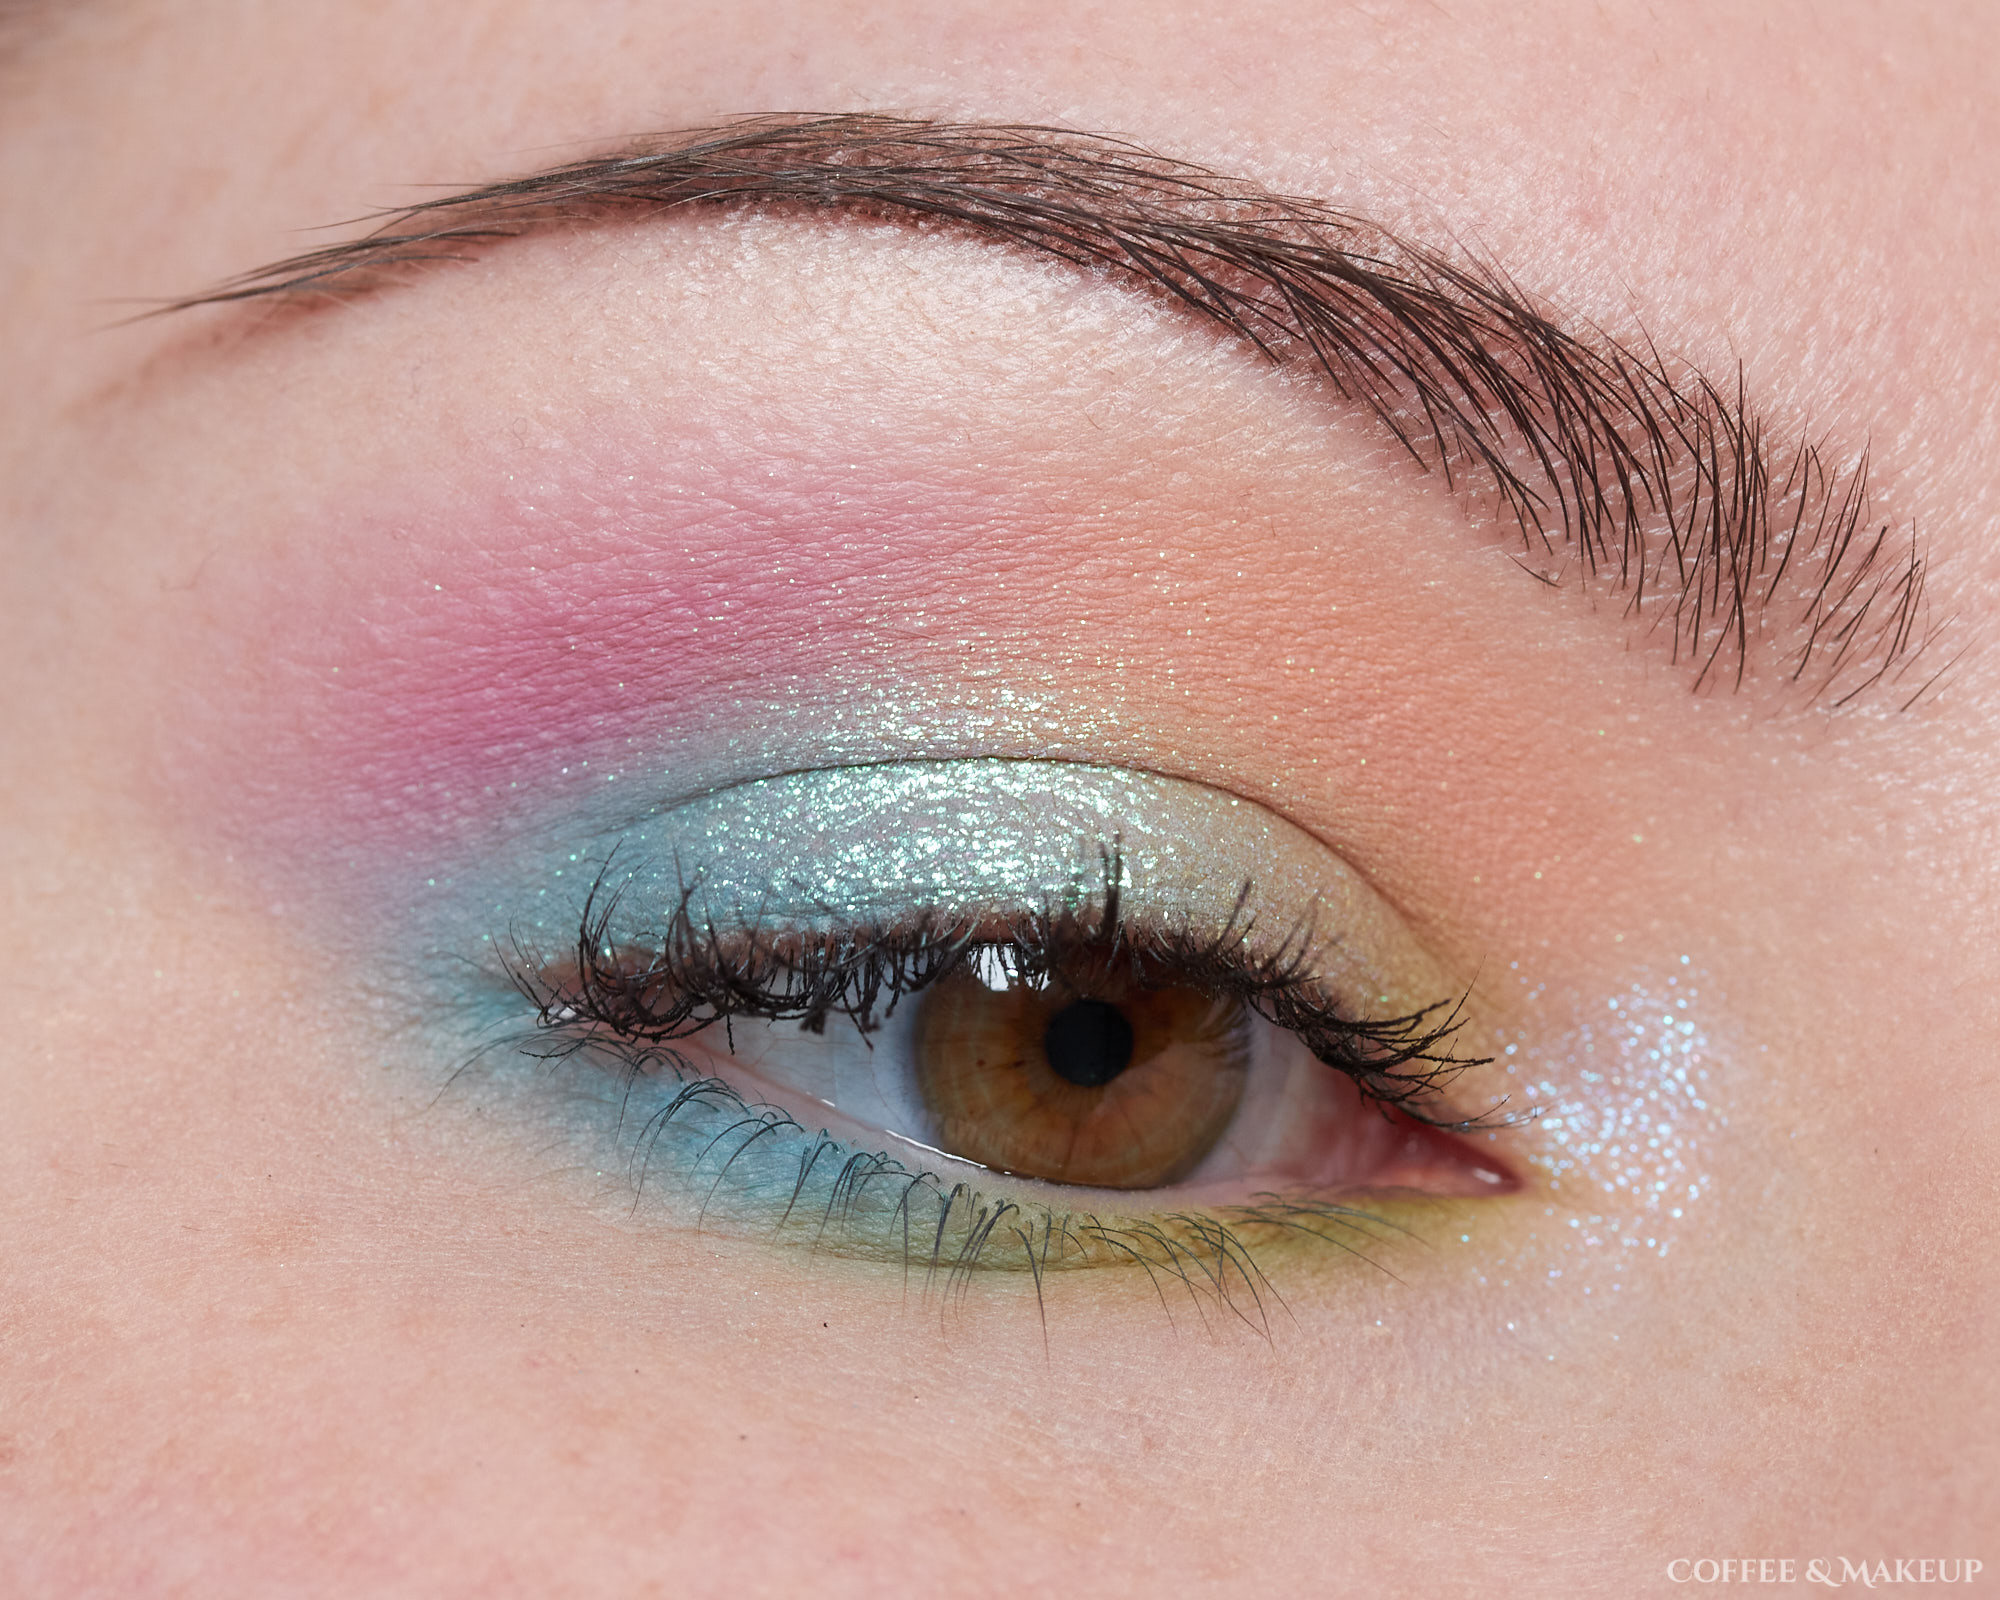 Makeup Geek Soft Focus Colors and Devinah Xploders Look #1 (unedited)